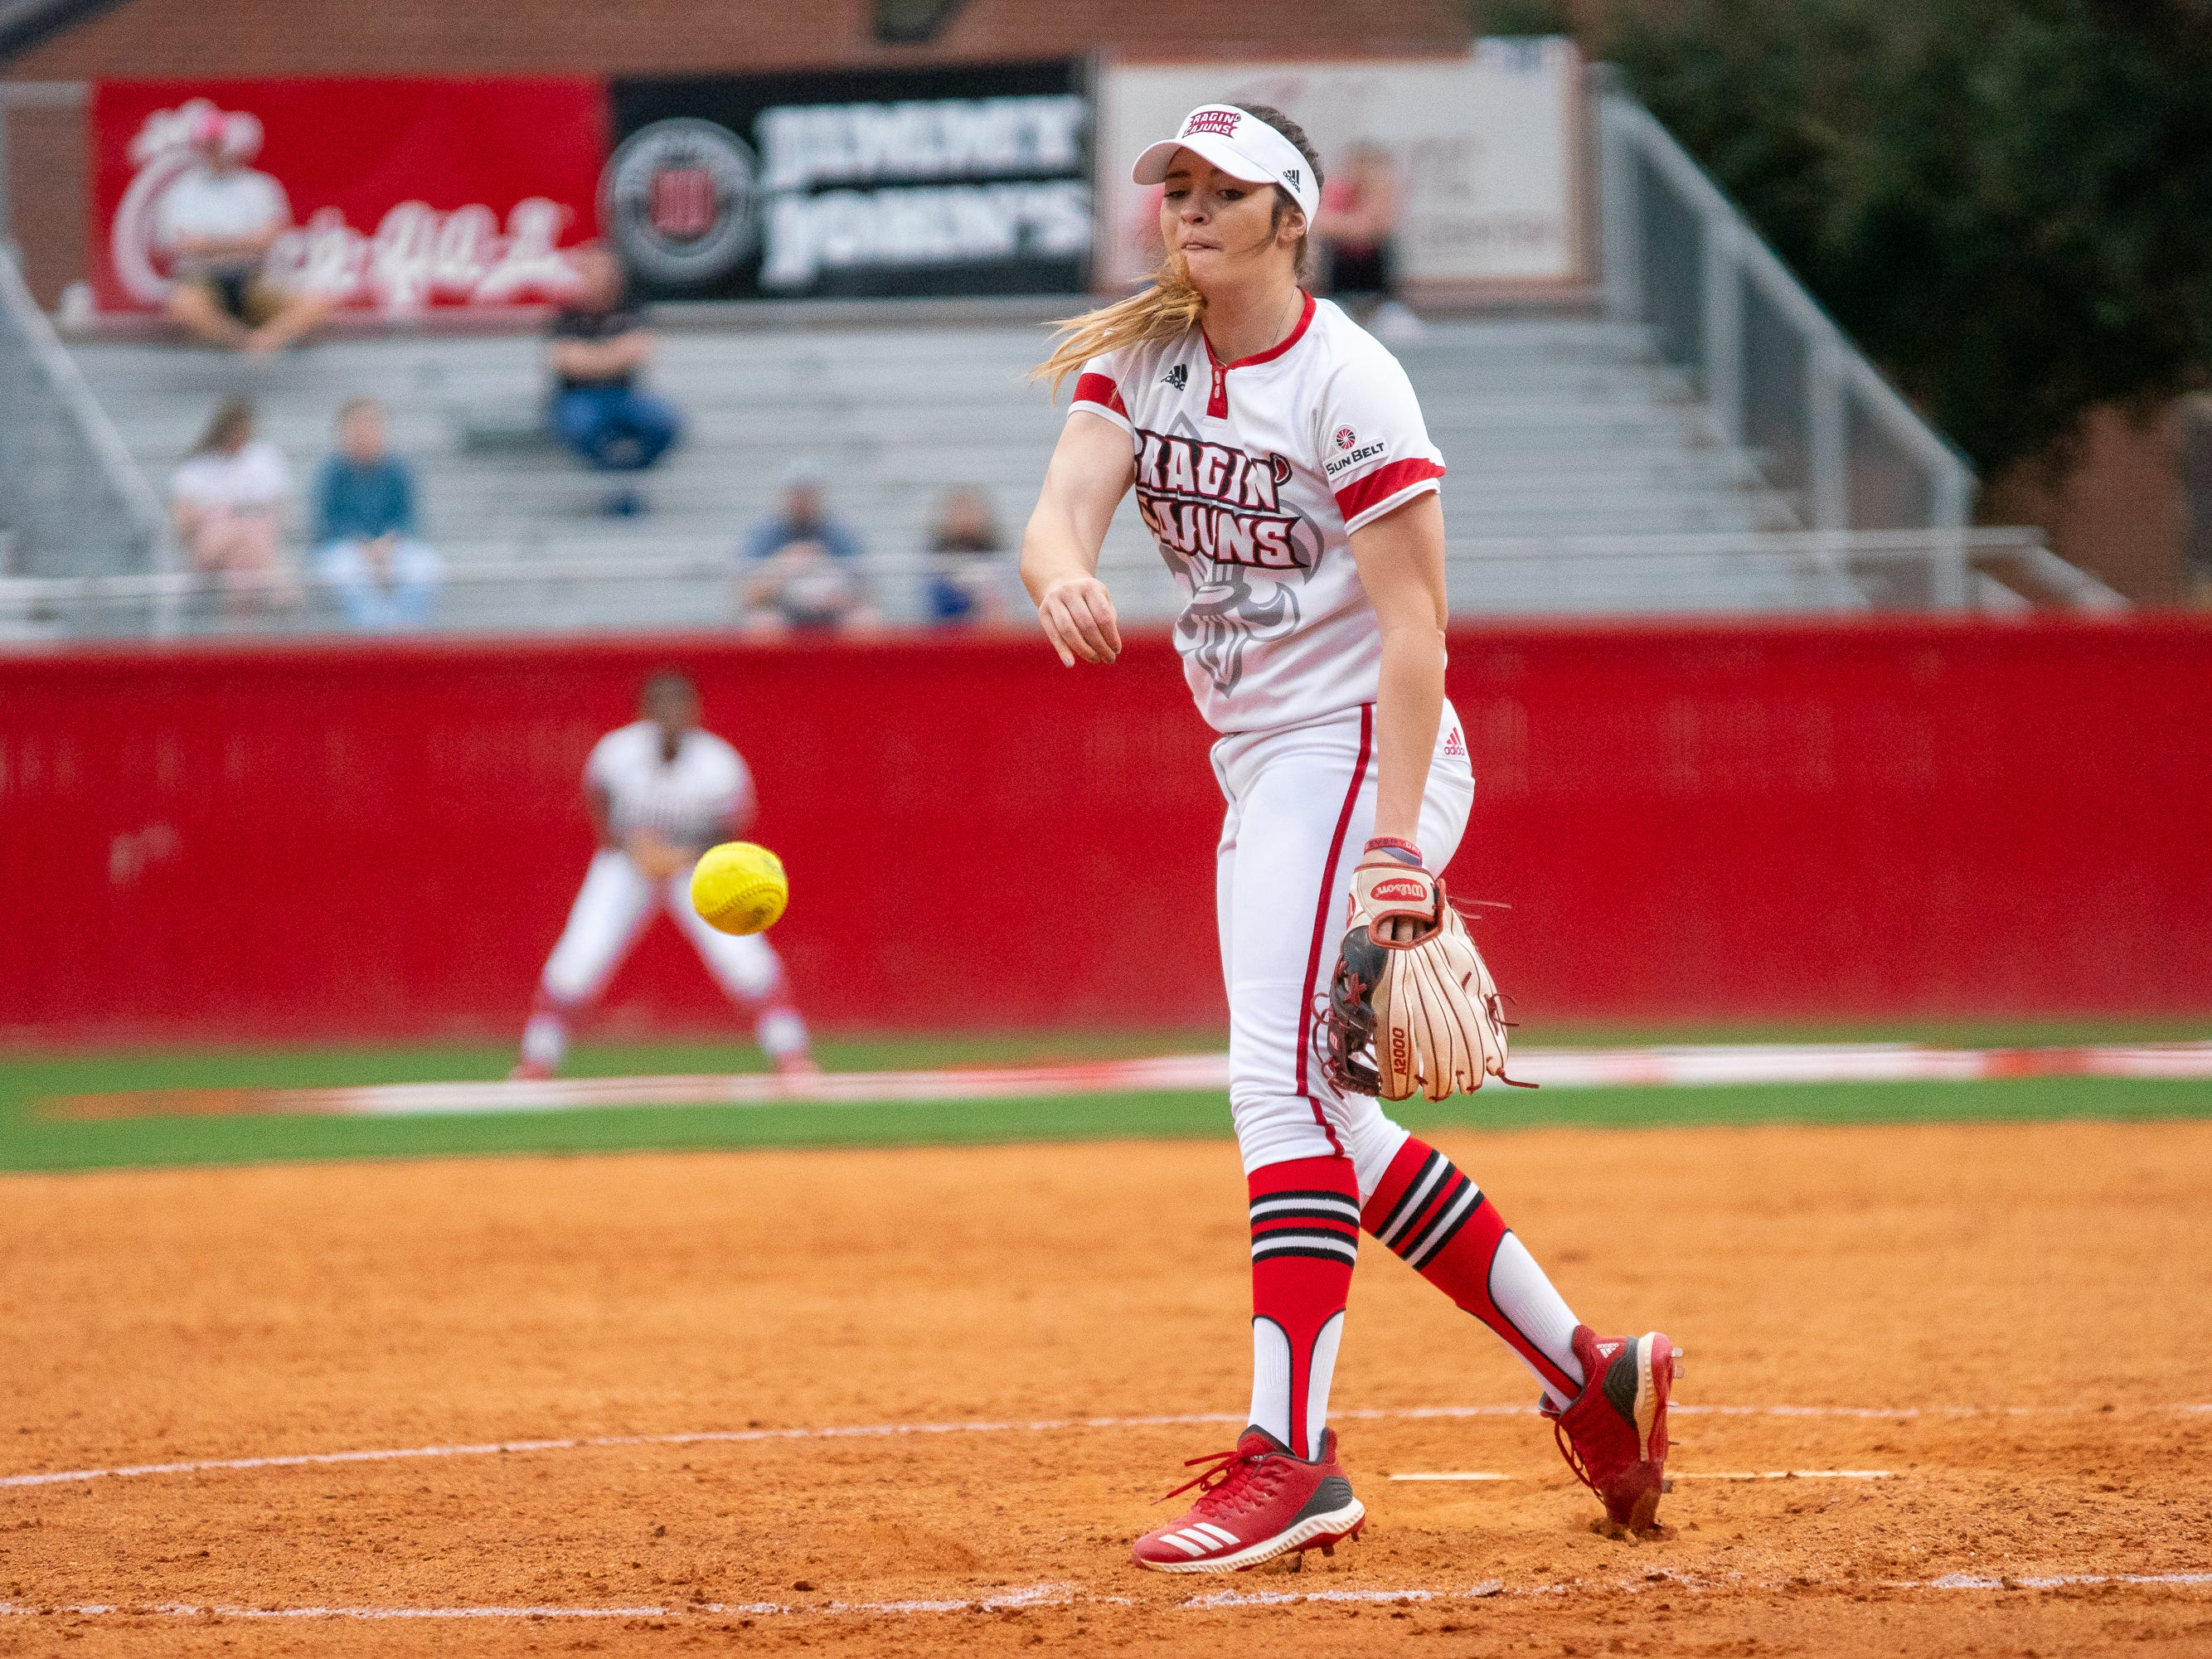 UL's pitcher Summer Ellyson throws the ball towards home plate as the Ragin' Cajuns play against the California Golden Bears at Lamson Park on February 11, 2019.